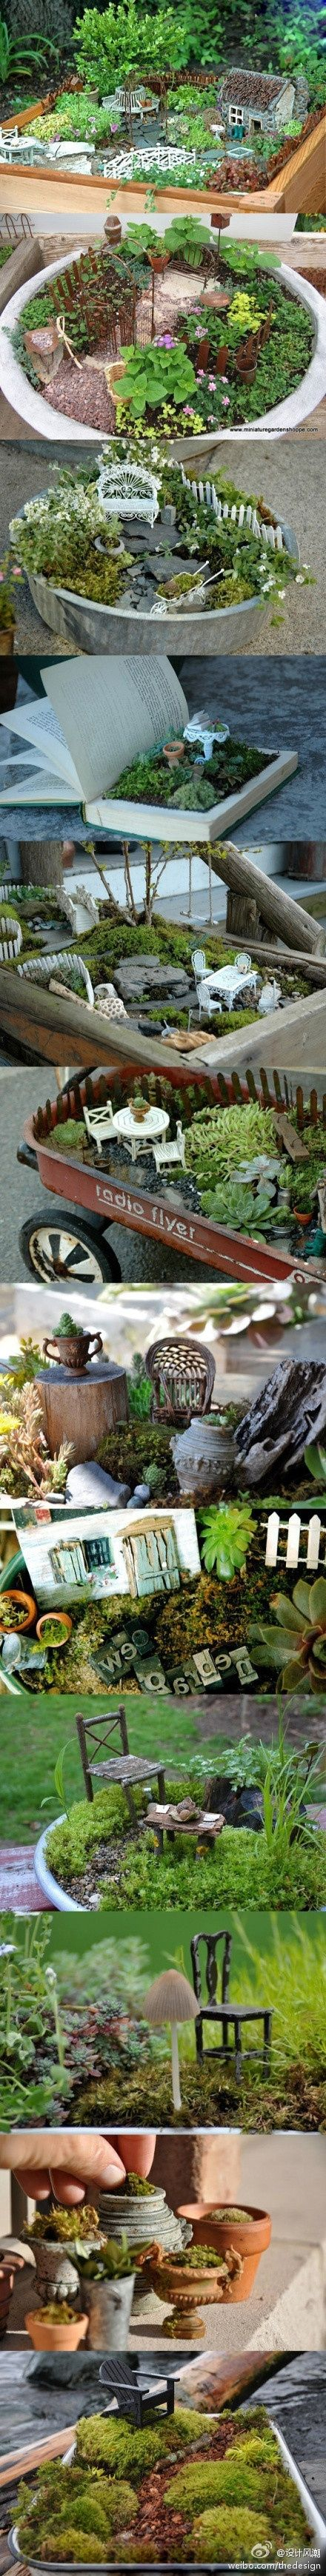 Fairy gardens are all the rage in Pinterest! Here are some adorable ideas for making your own.